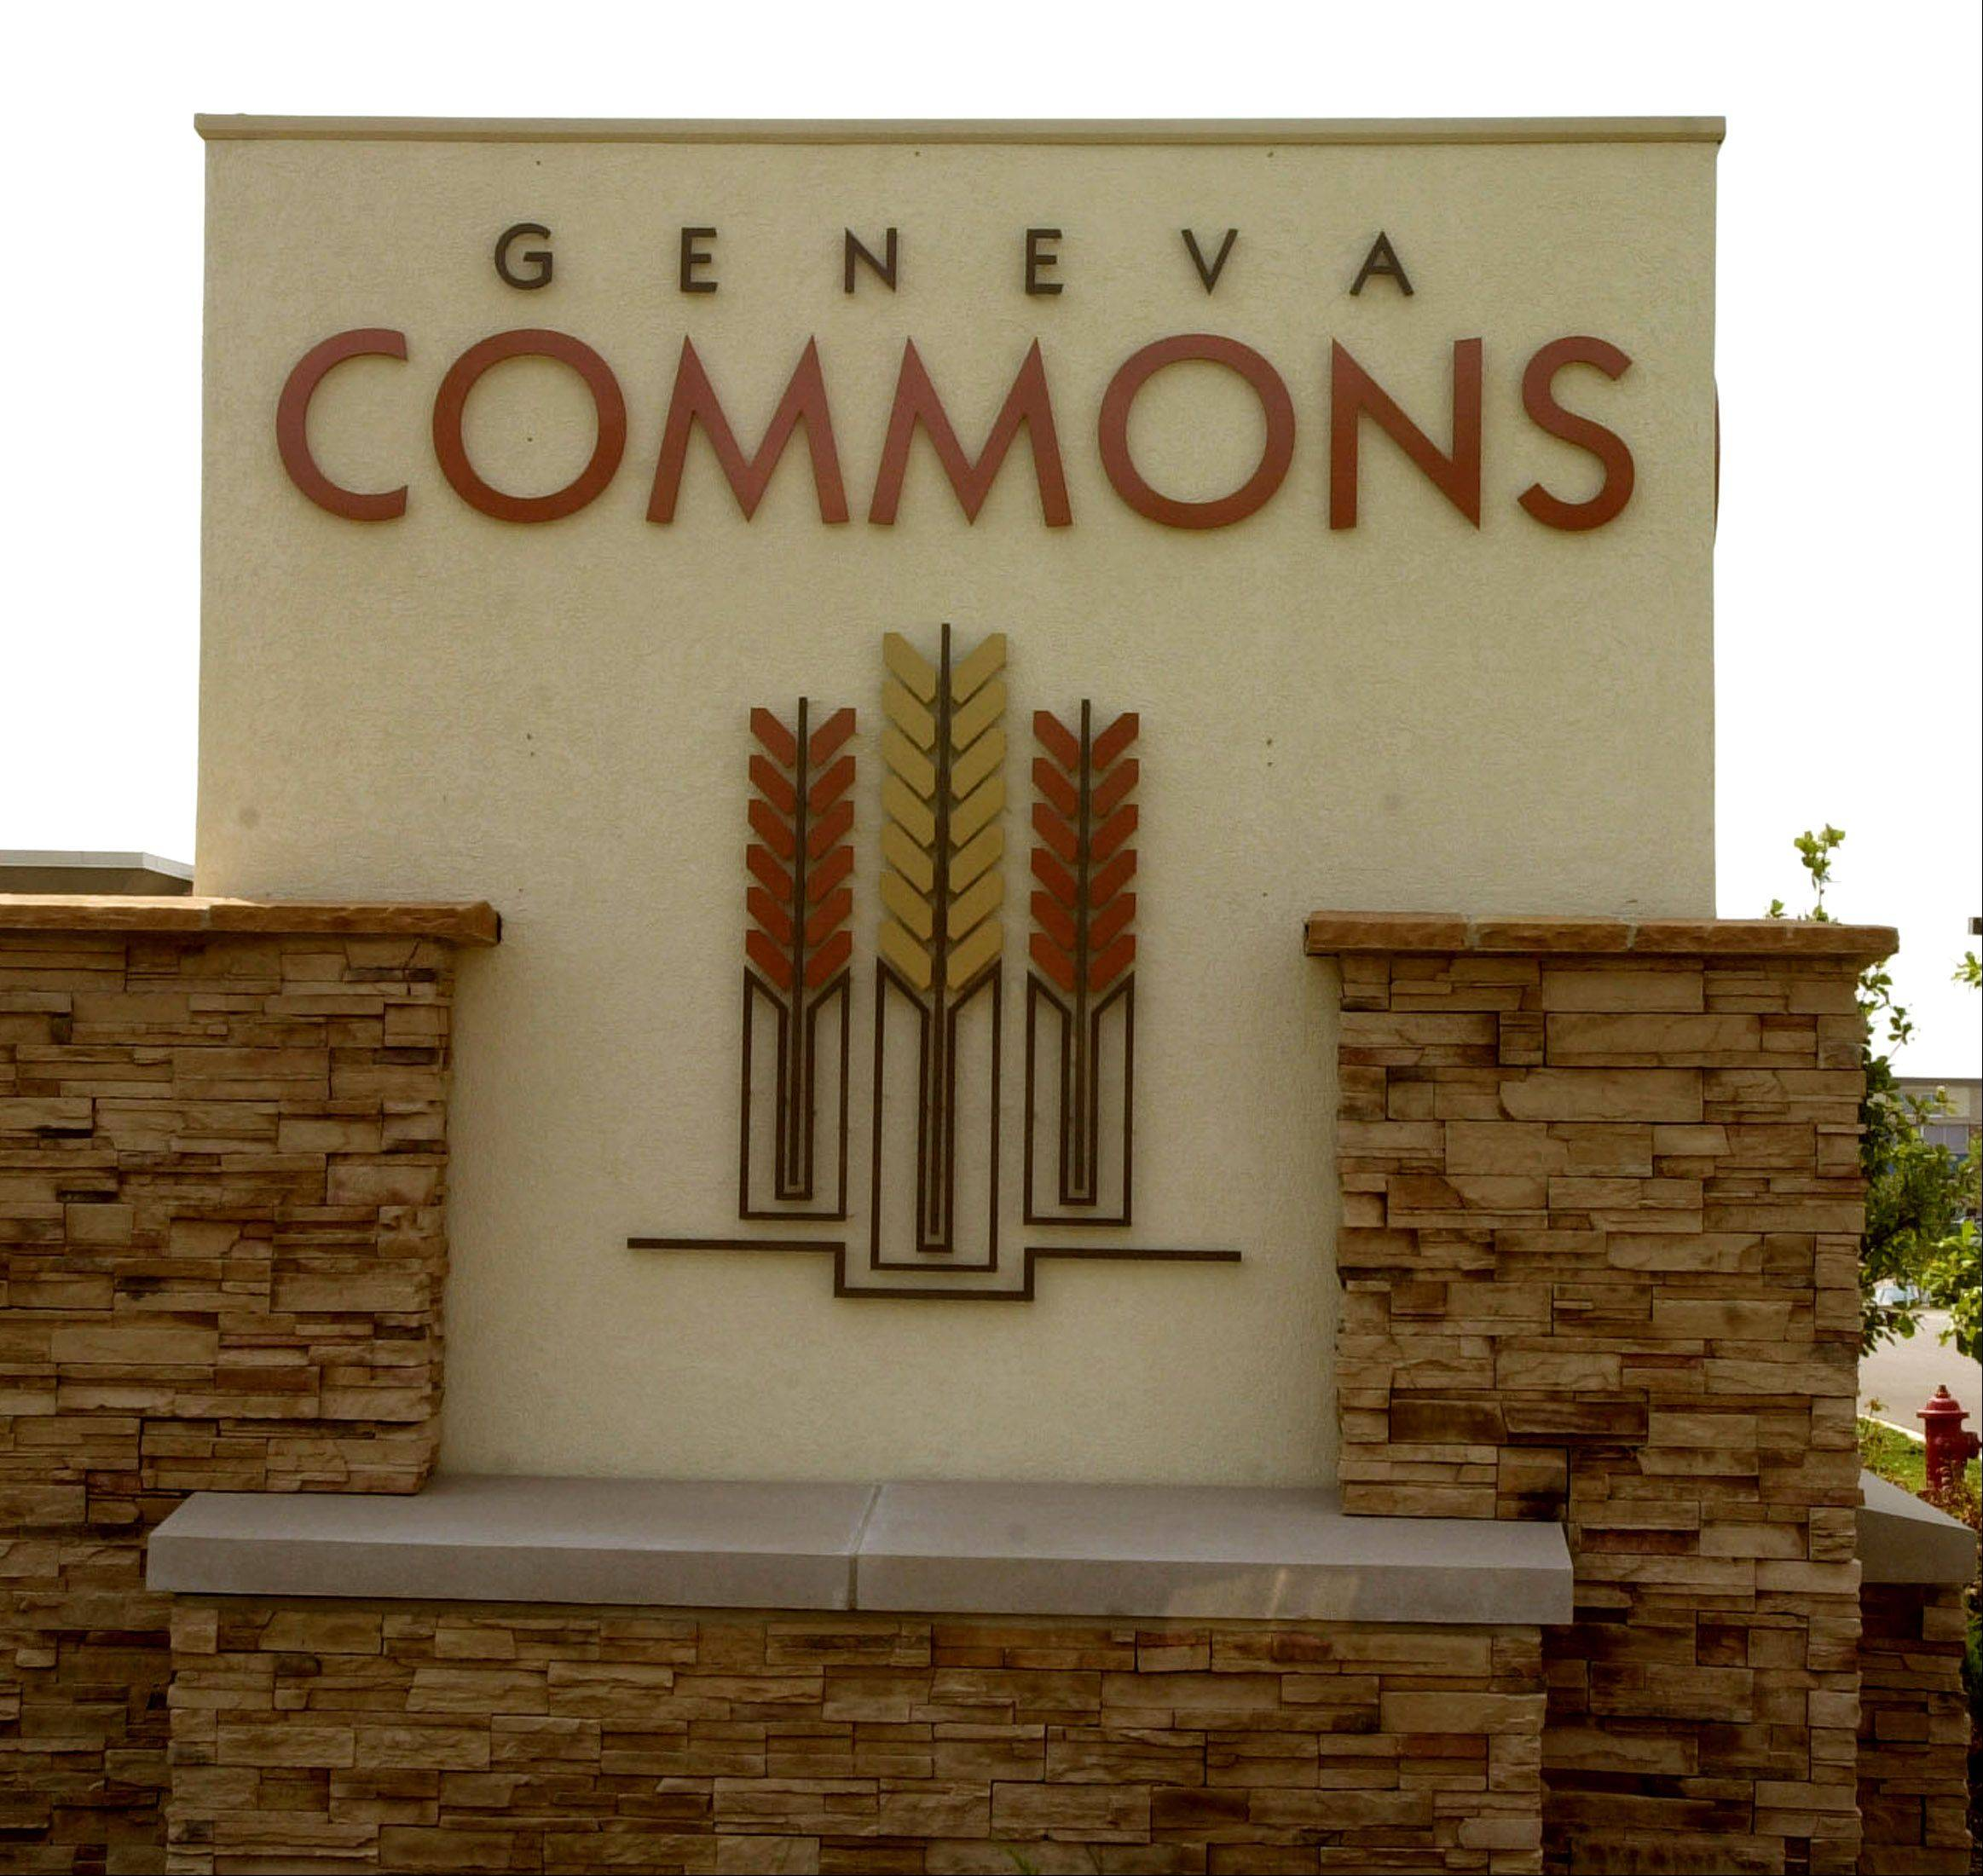 The owners of the Geneva Commons shopping center have defaulted on a $40.4 million loan, Crain�s Chicago Business reported Friday.